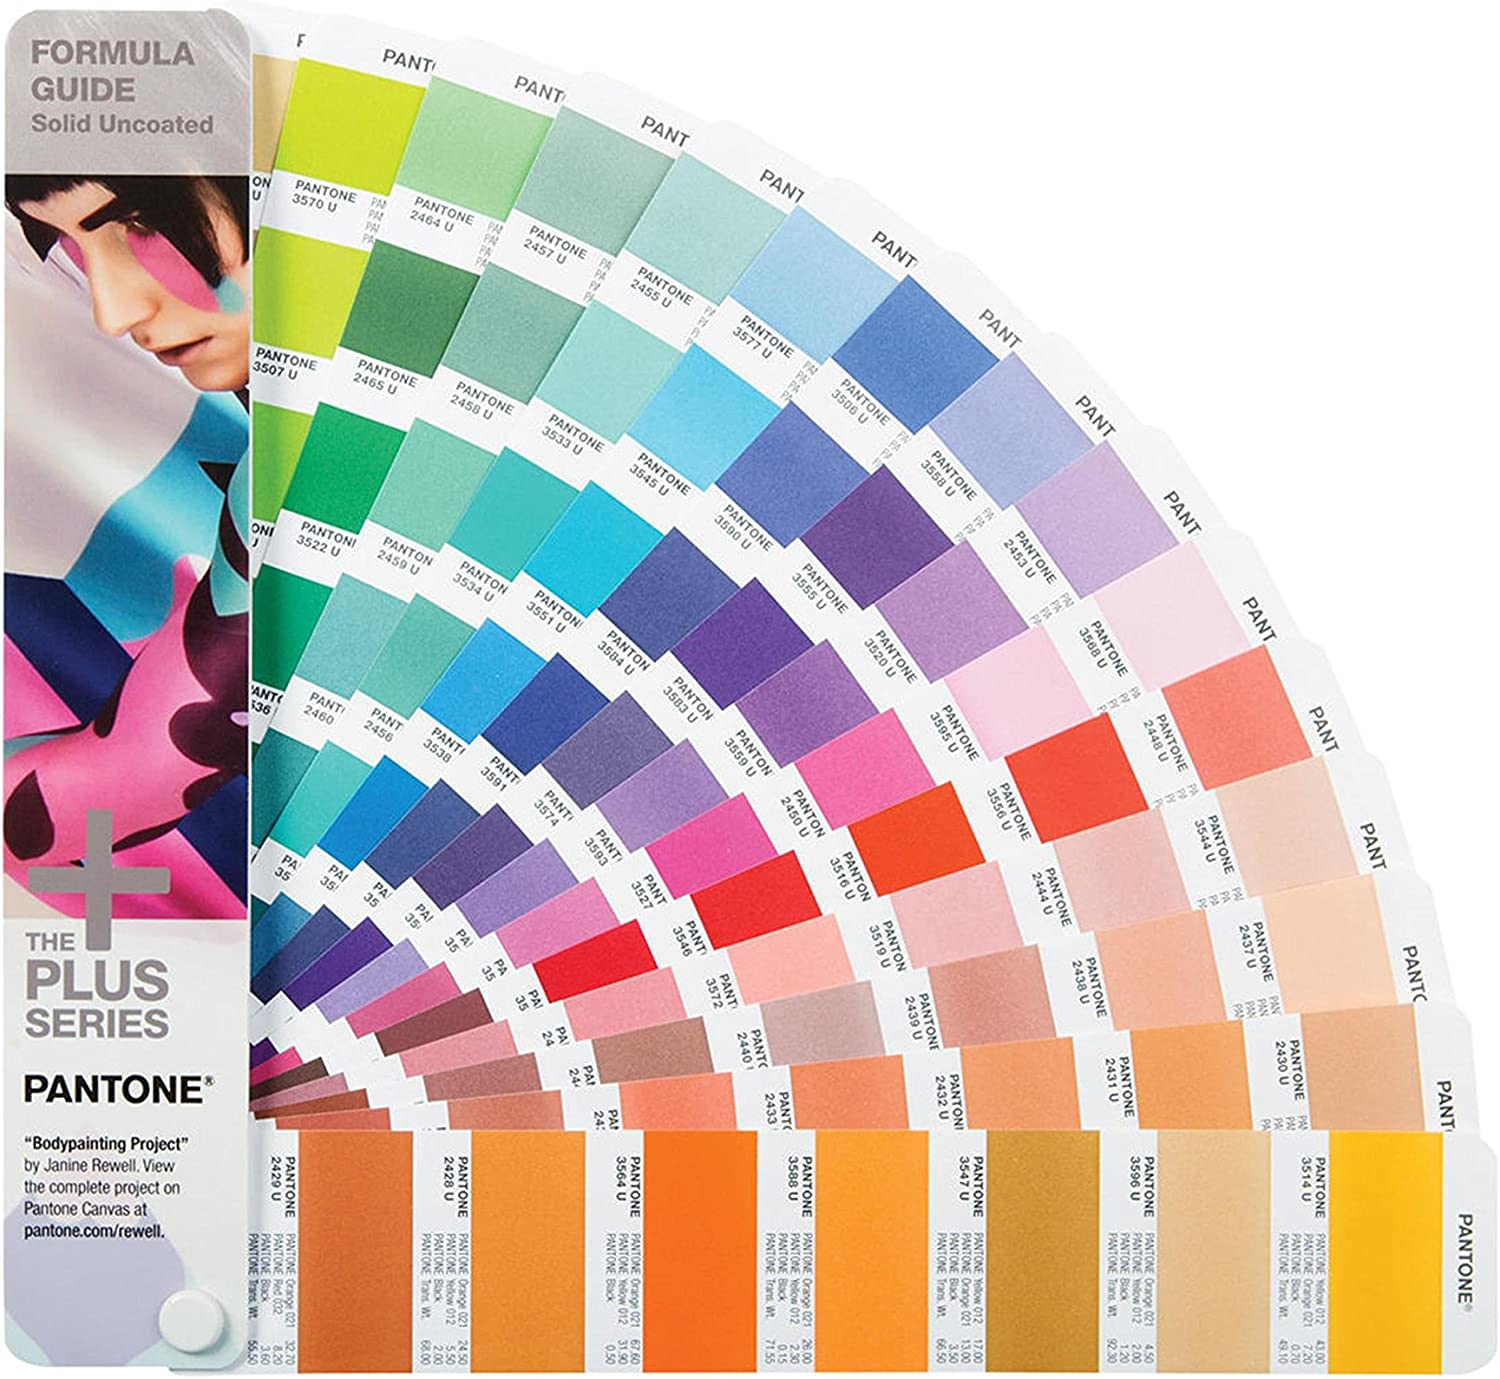 Pantone Starter Formula Guide Coated /& Uncoated GG1511 **BRAND NEW**